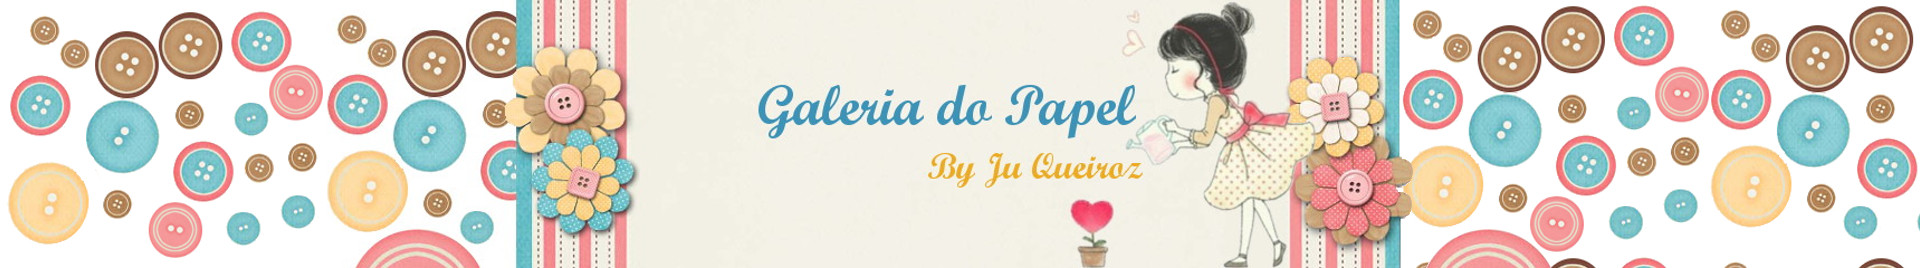 Galeria do papel